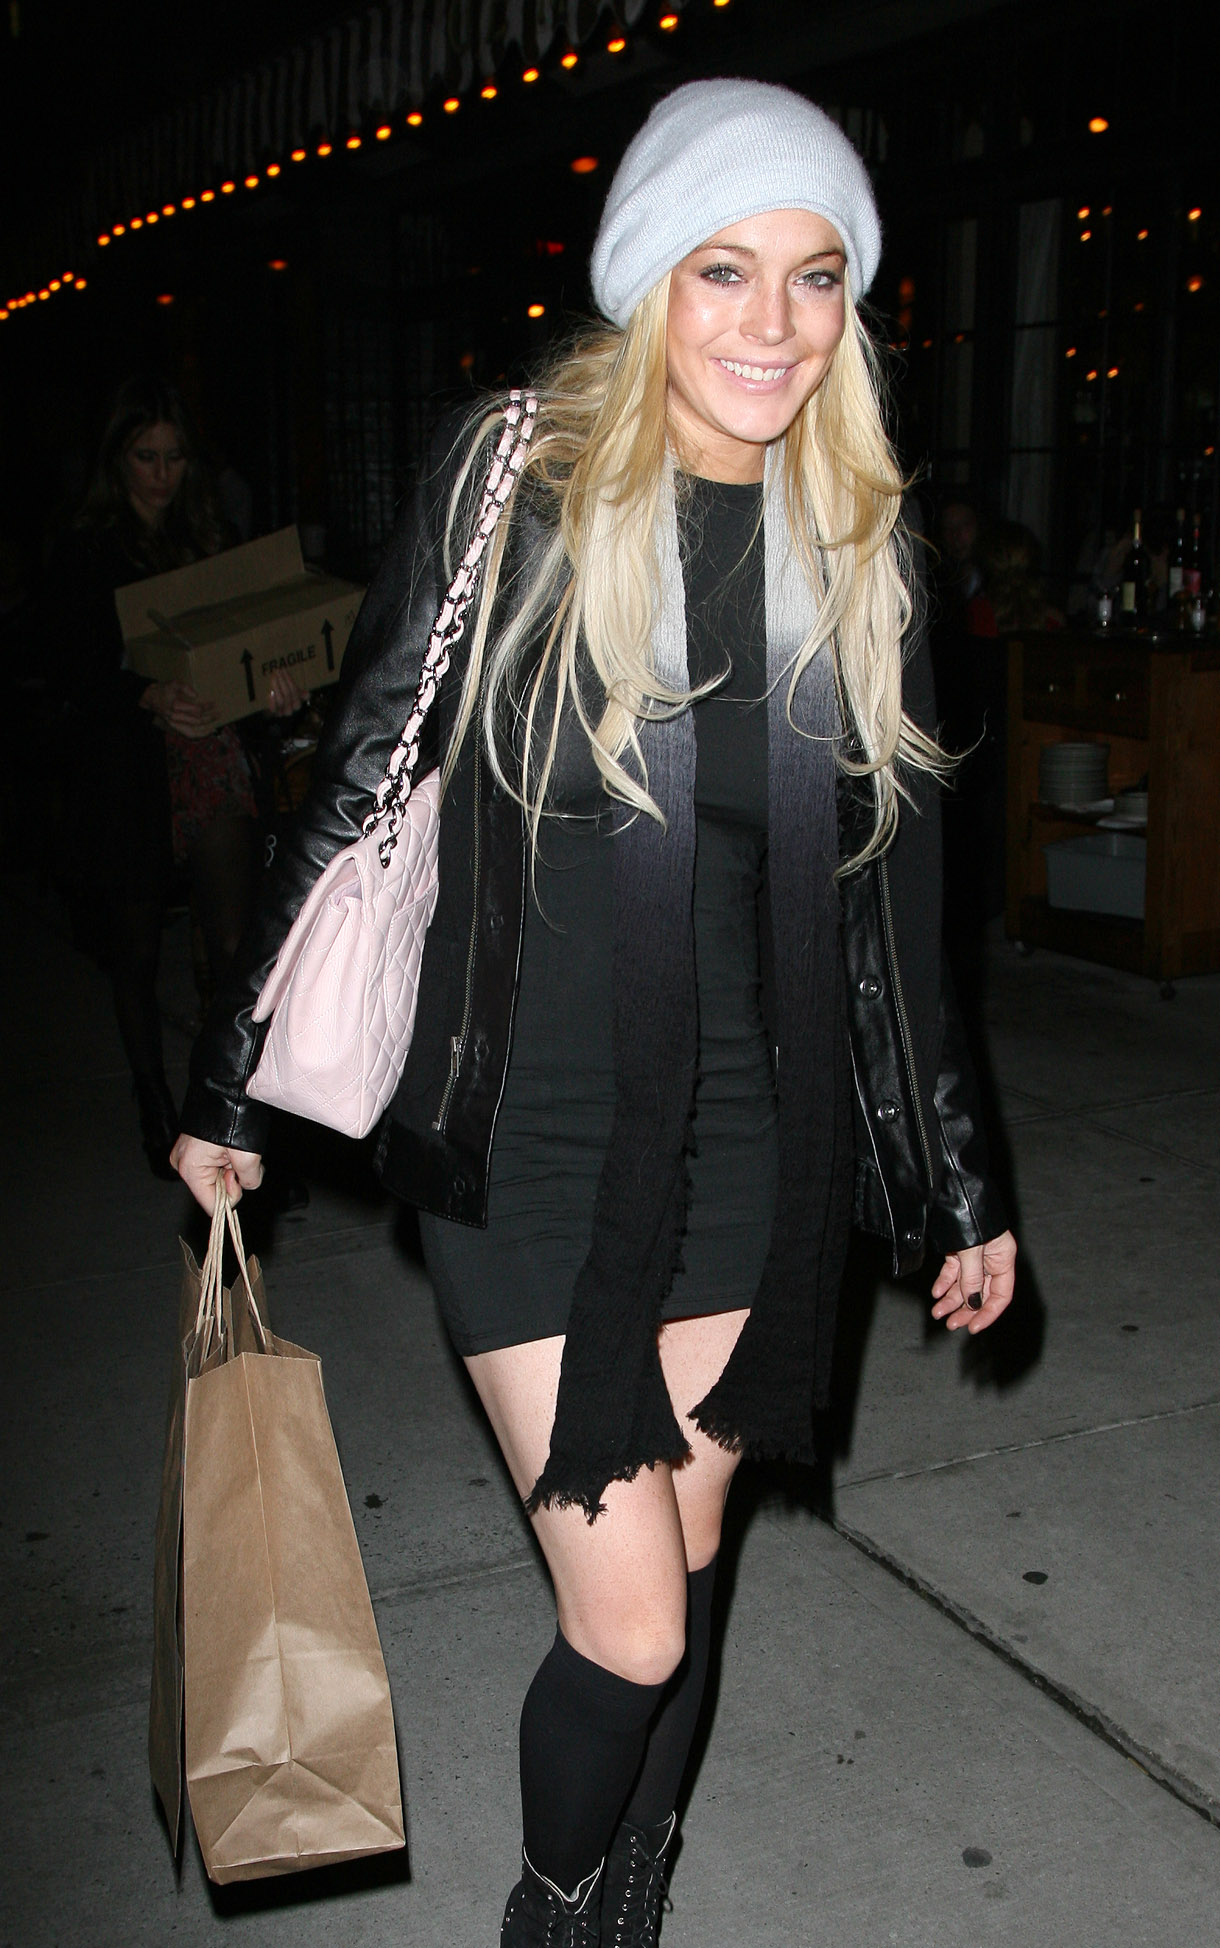 67303_Lindsay_Lohan_out_to_dinner_in_New_York_City-2_122_98lo.jpg